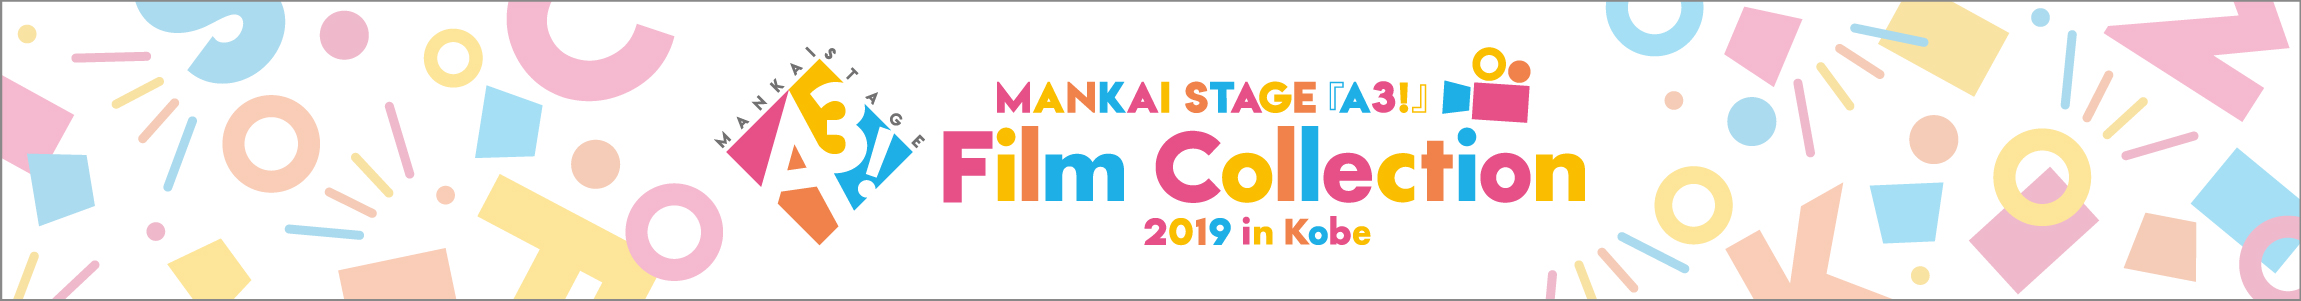 MANKAI STAGE『A3!』 Film Collection 2019 in Kobe